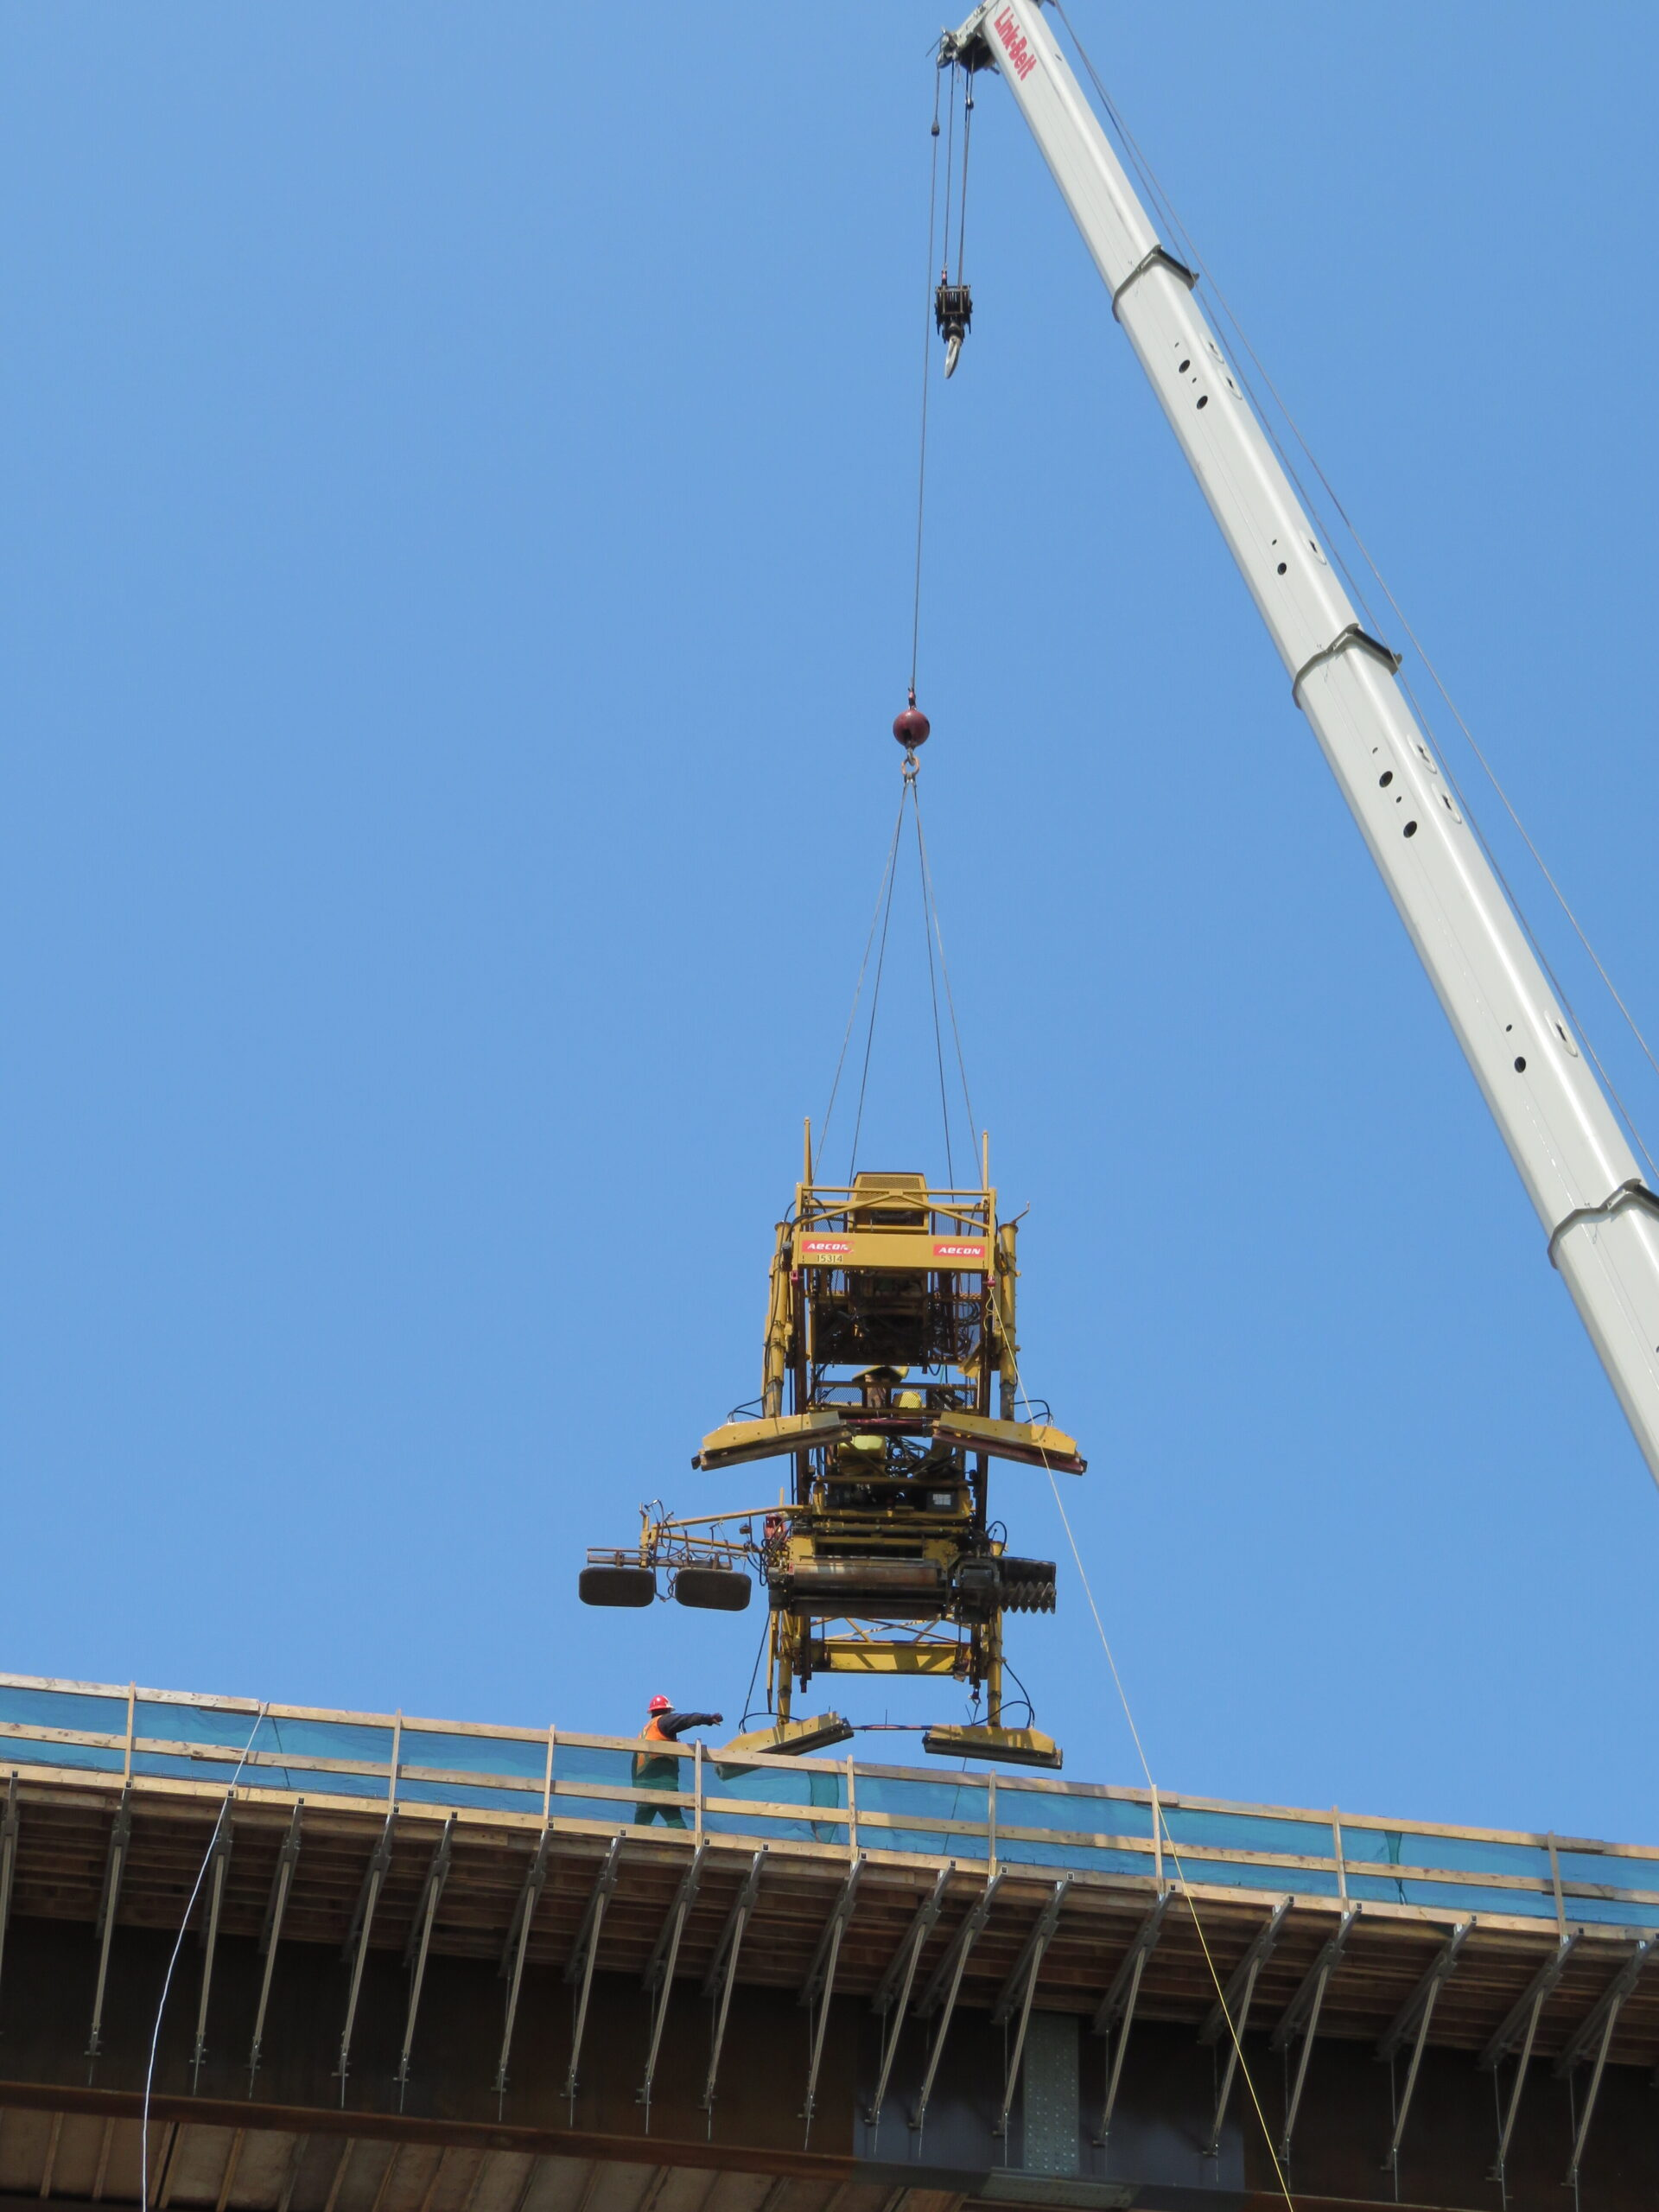 Lowering the concrete finisher onto the deck